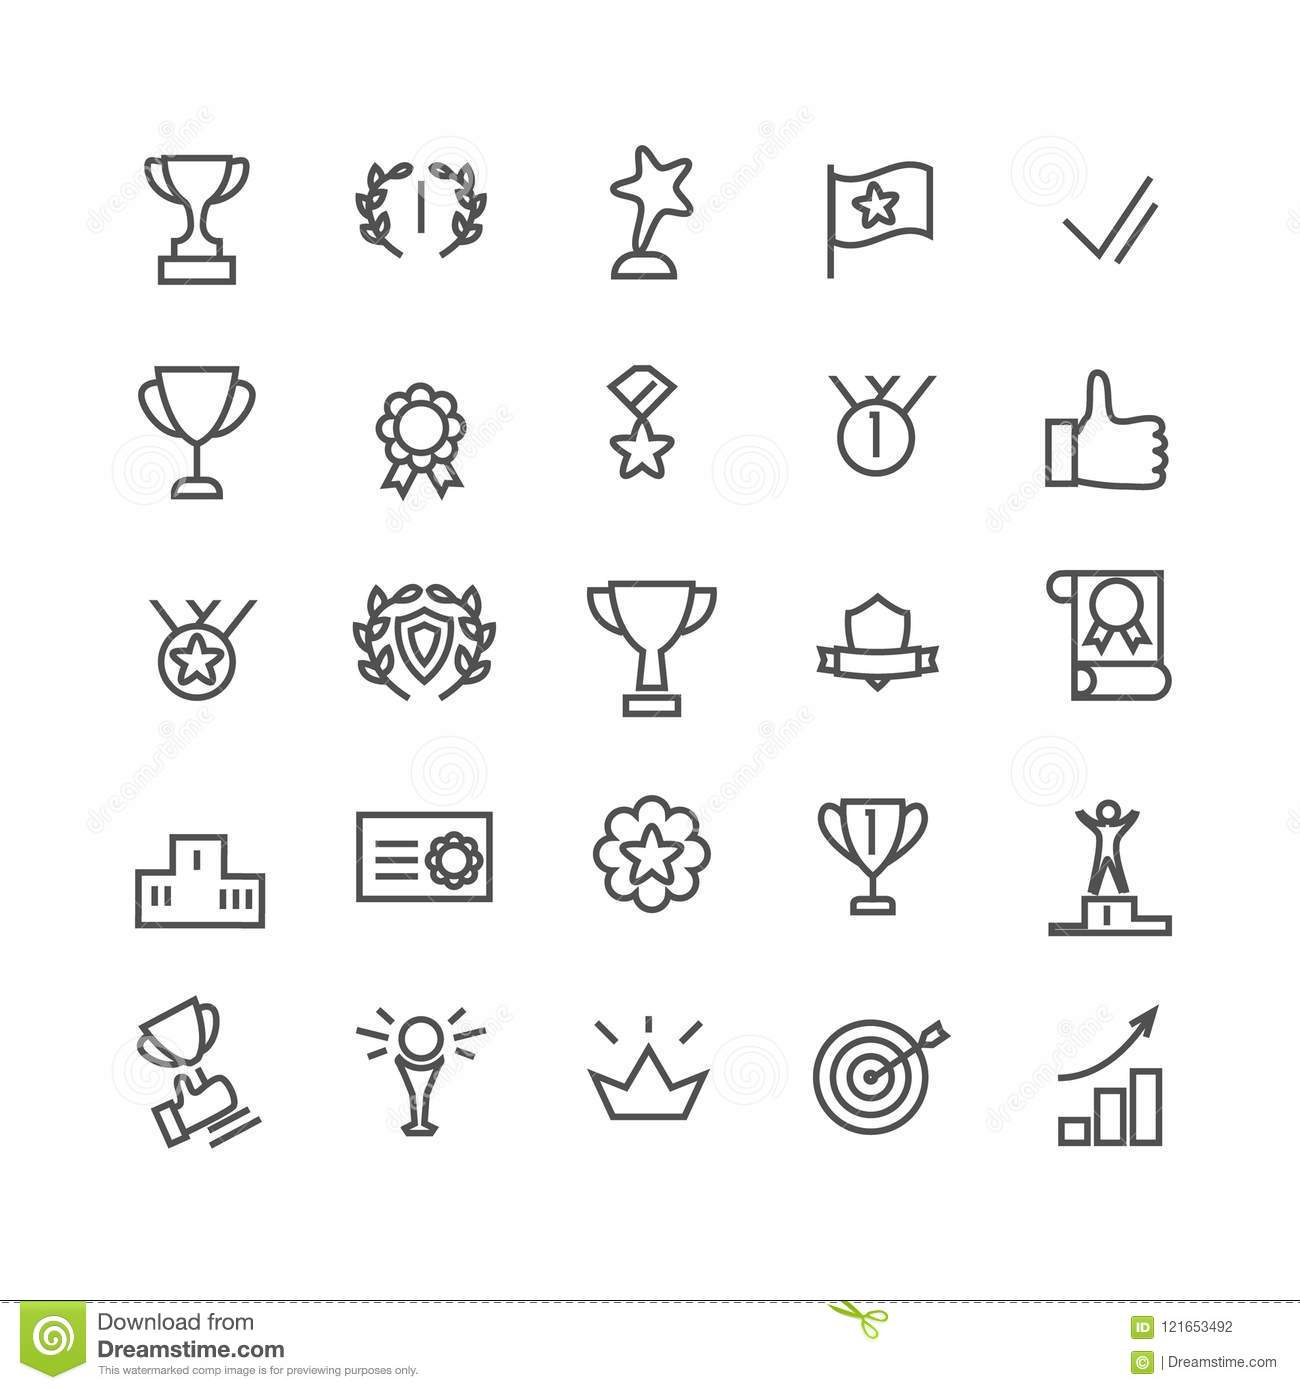 Award icon set. Line art. Includes such icons as trophy cup, goal, success, thumbs up. Editable stroke 48X48 pixel perfect.